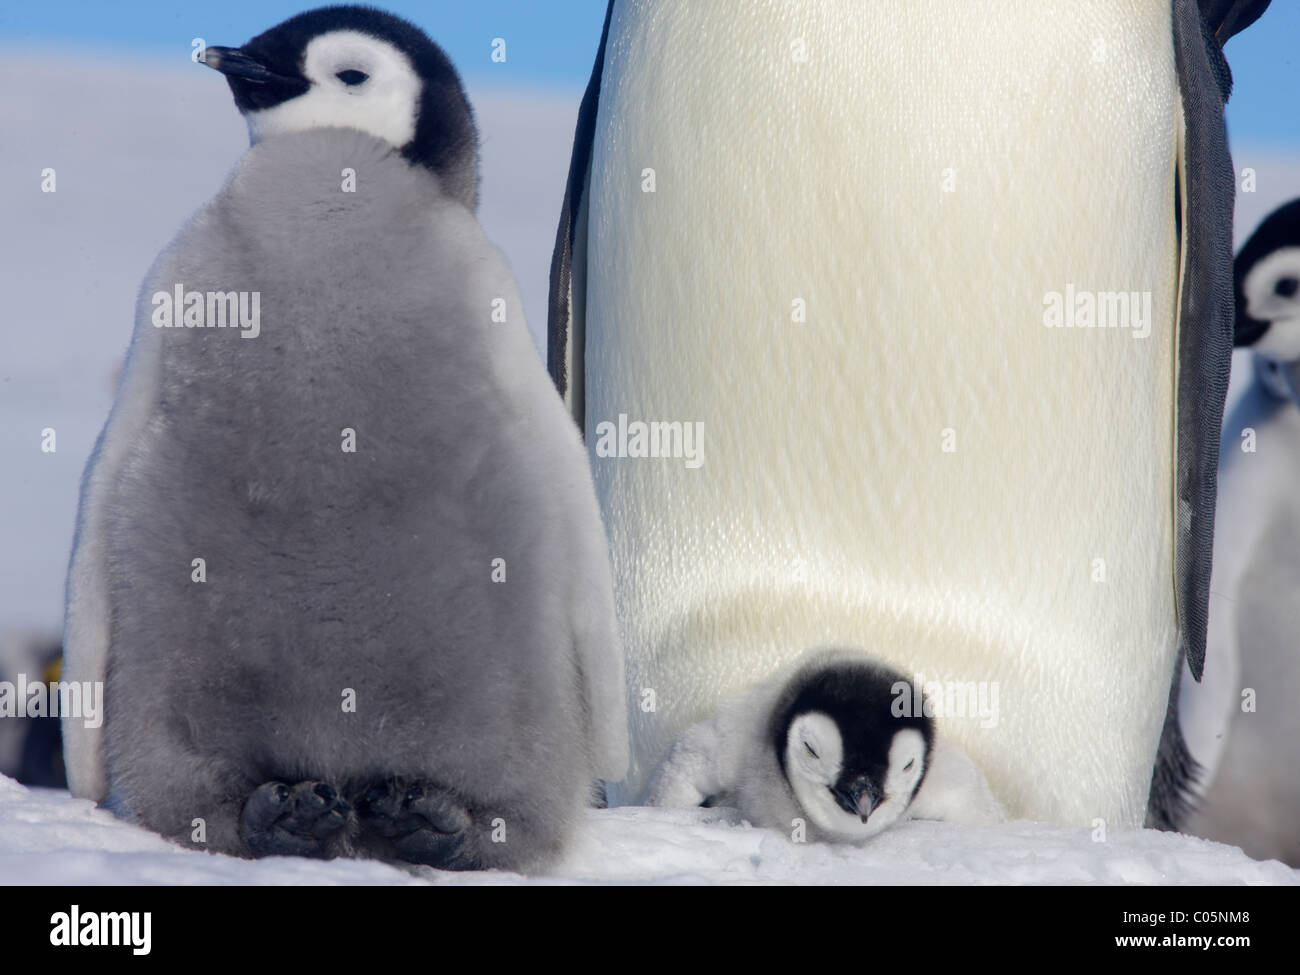 Manchots empereurs et les poussins, octobre, Snow Hill Island, mer de Weddell, l'Antarctique. Photo Stock